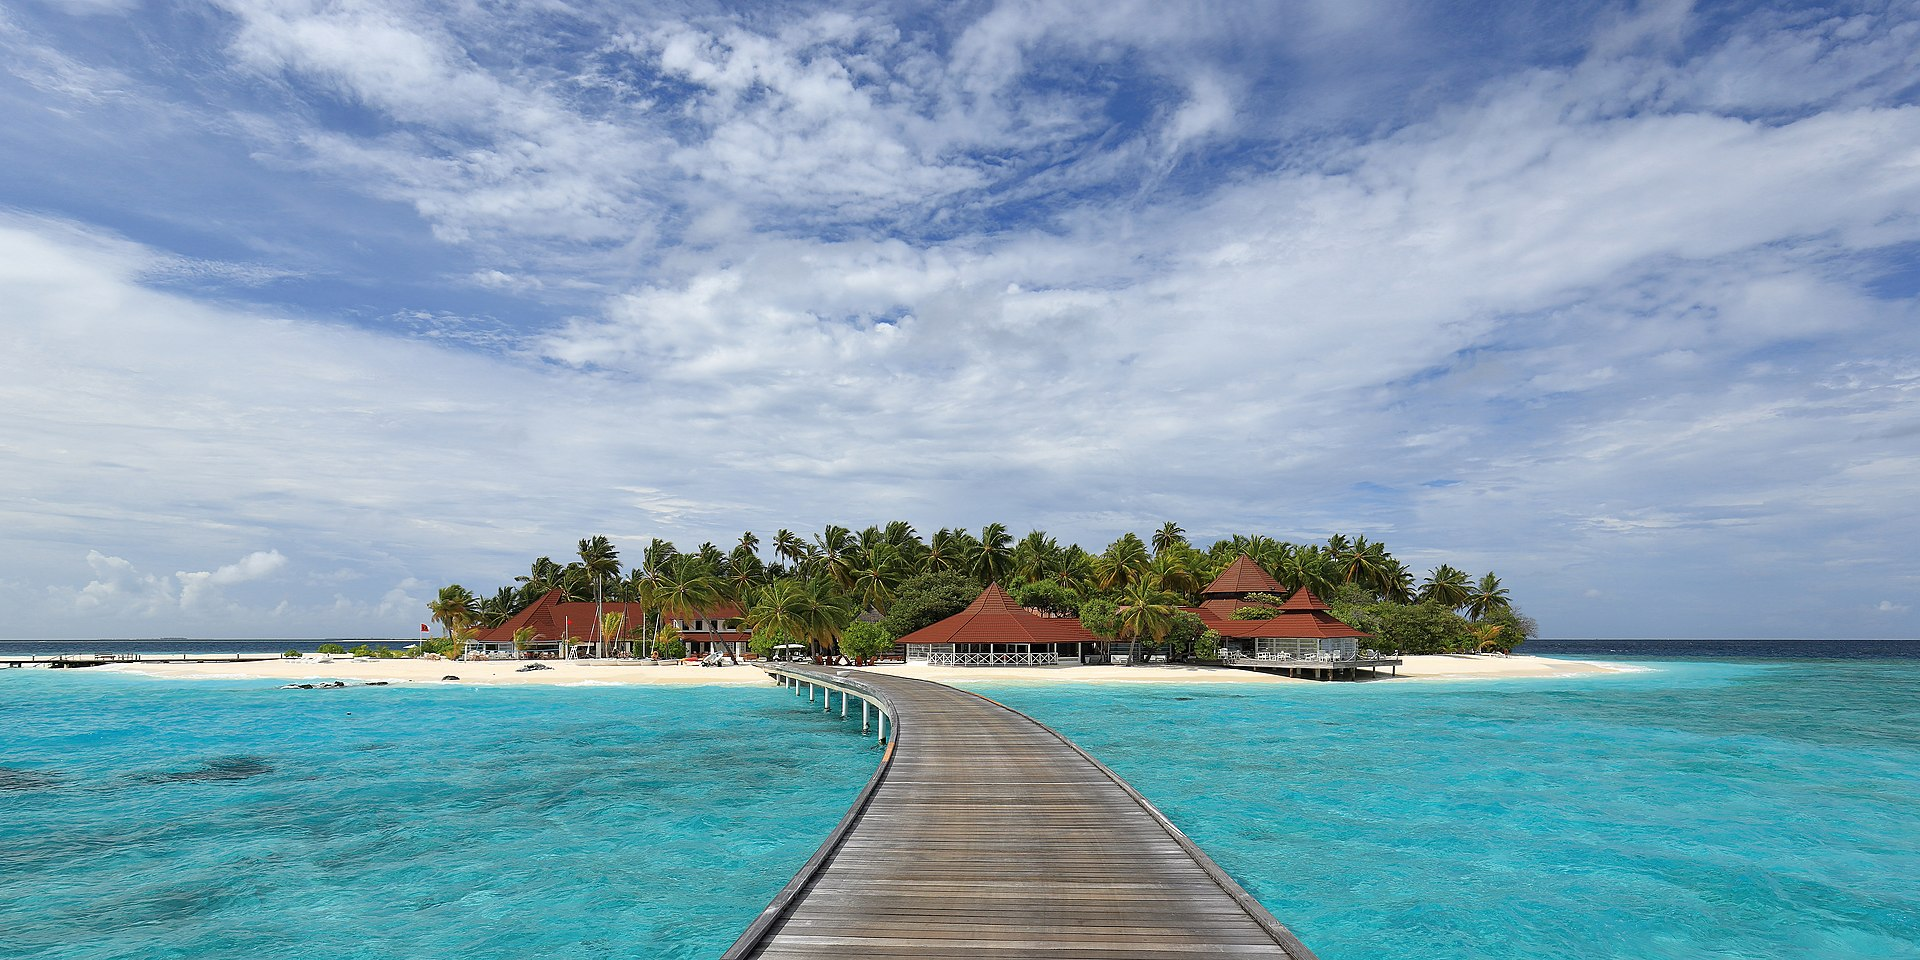 Skyline of Thudufushi